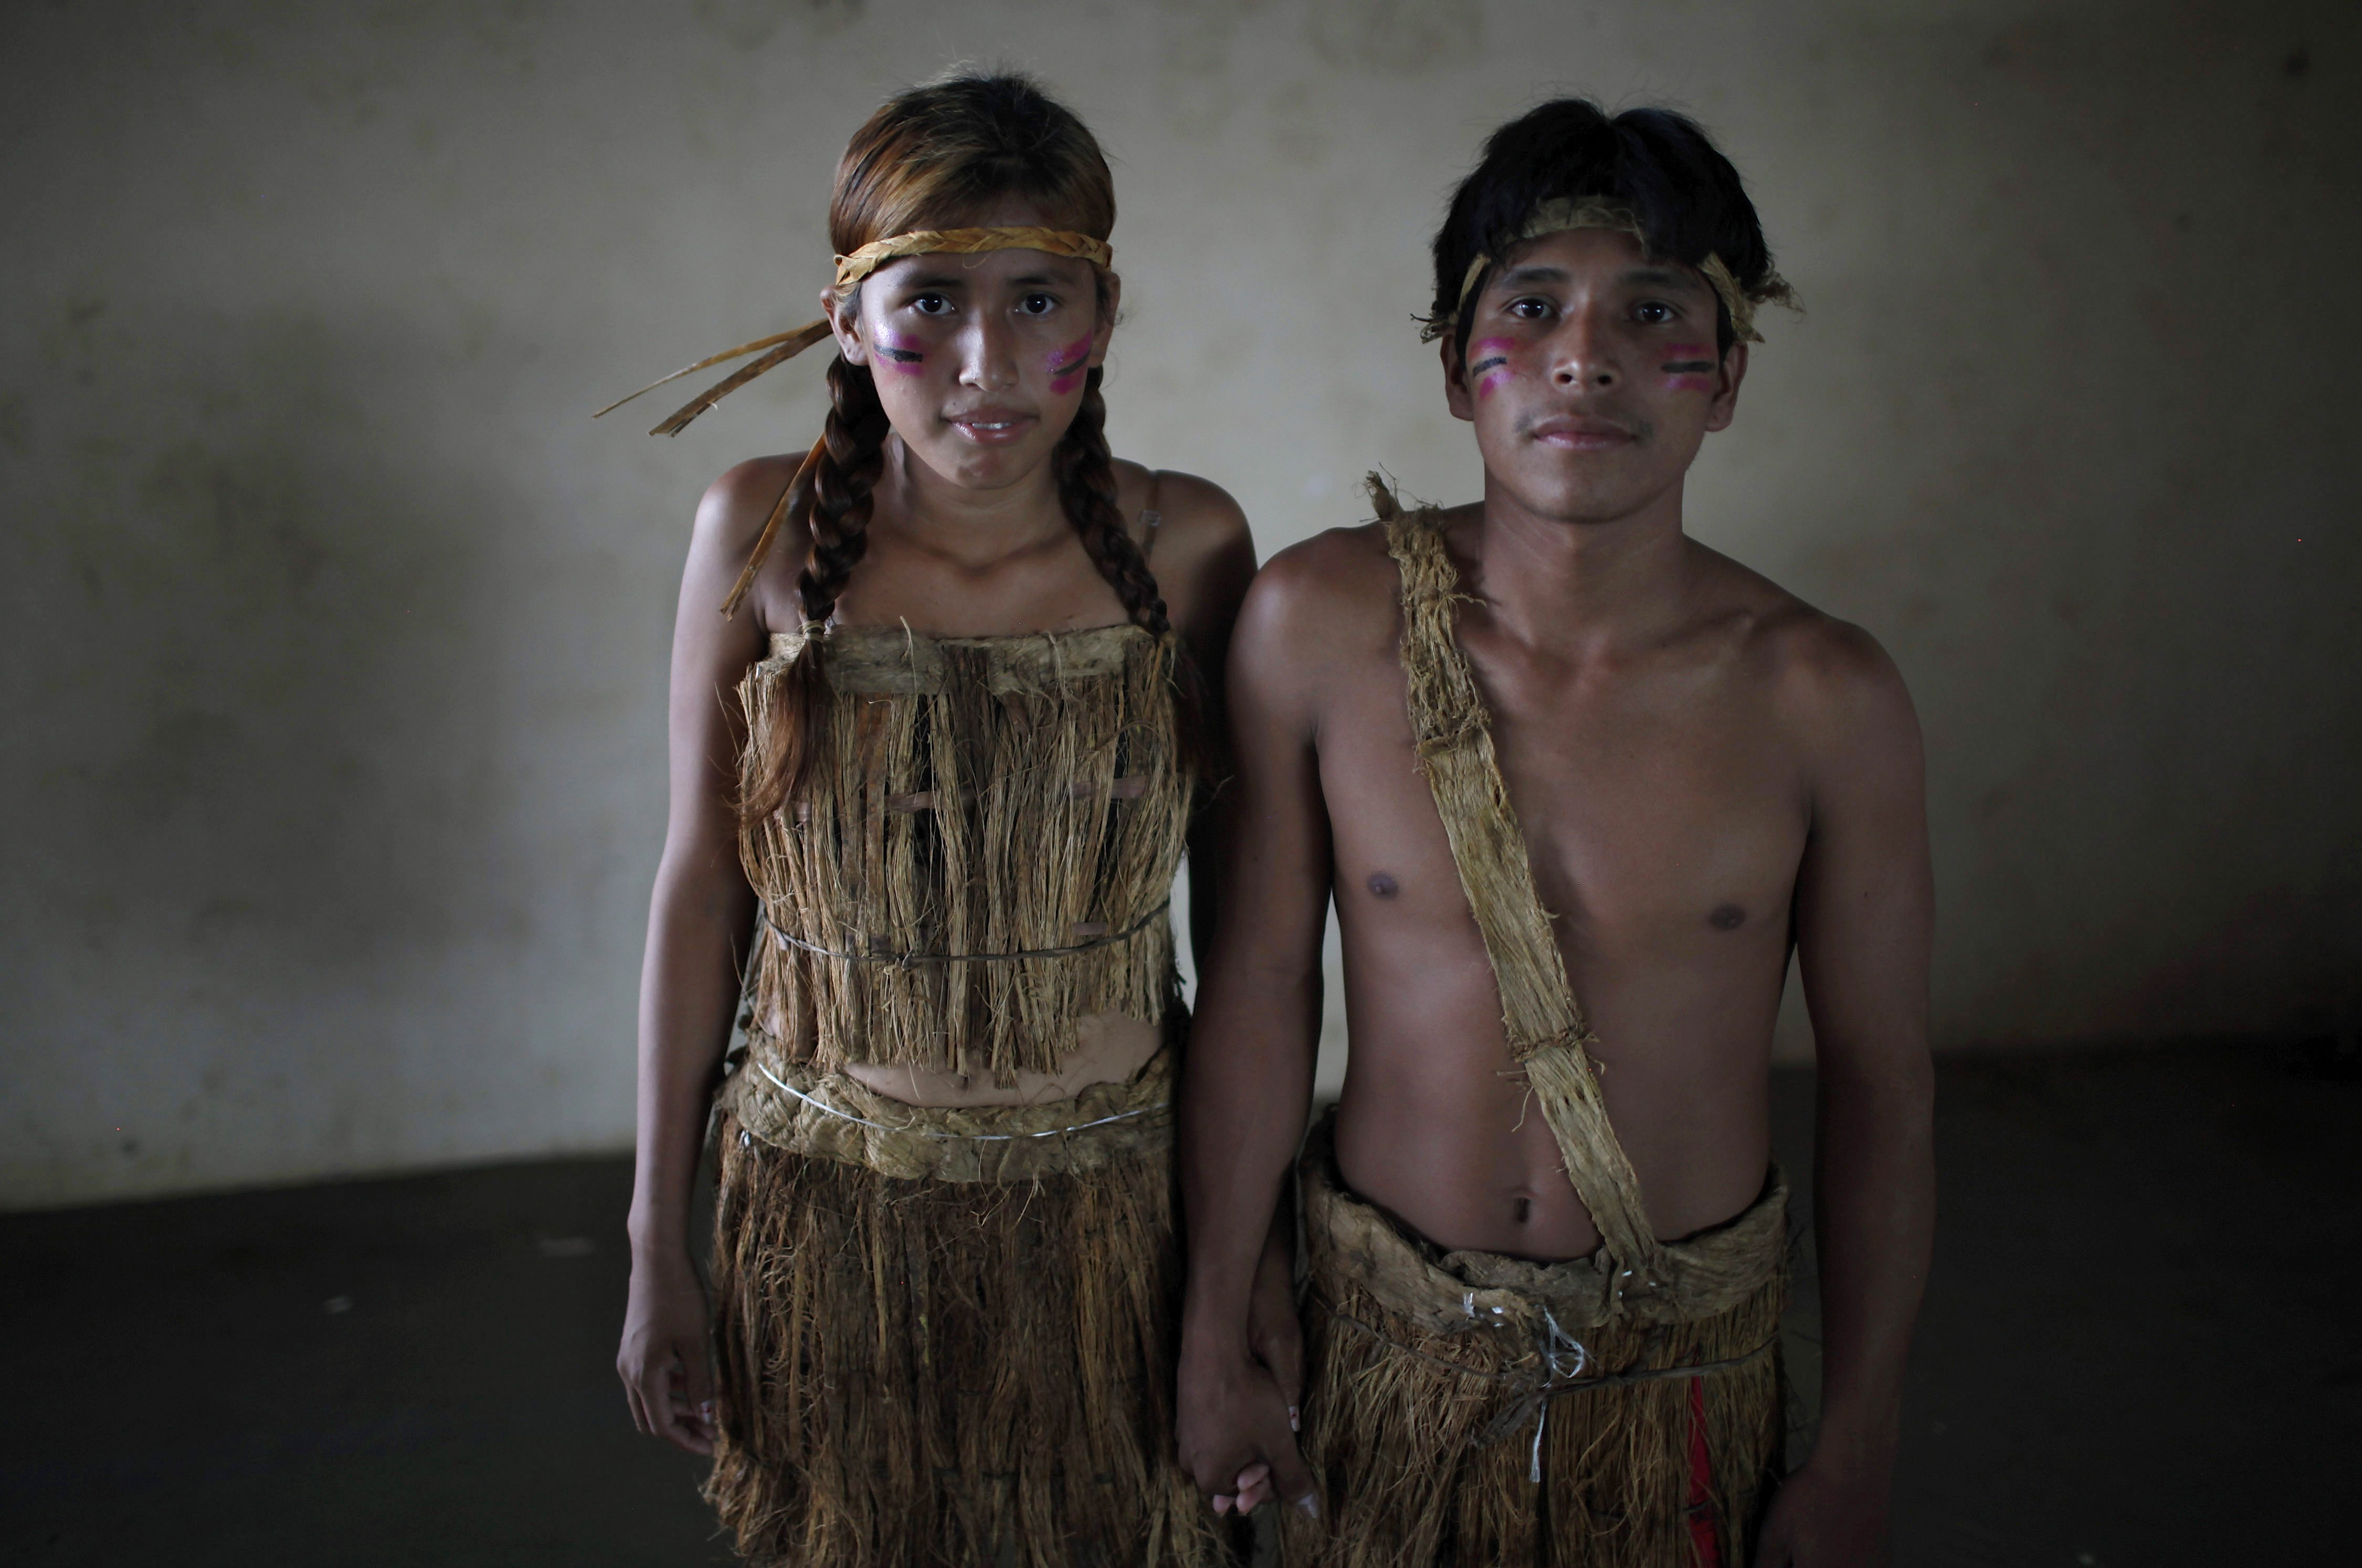 """Erika Kanacmi, left, and Denis Capi, an Esse Ejja indigenous couple, pose for a portrait before a collective wedding ceremony in Cobija, Bolivia, Saturday, Oct. 6, 2012. Indigenous couples from Bolivia's Amazon region got married in a mass wedding coined """"Collective Marriage from our Identity 2012,"""" organized by the government. Many of the couples were already legally married, but wanted to attend a ceremony that included some indigenous traditions from the Amazon. (AP Photo/Juan Karita)"""